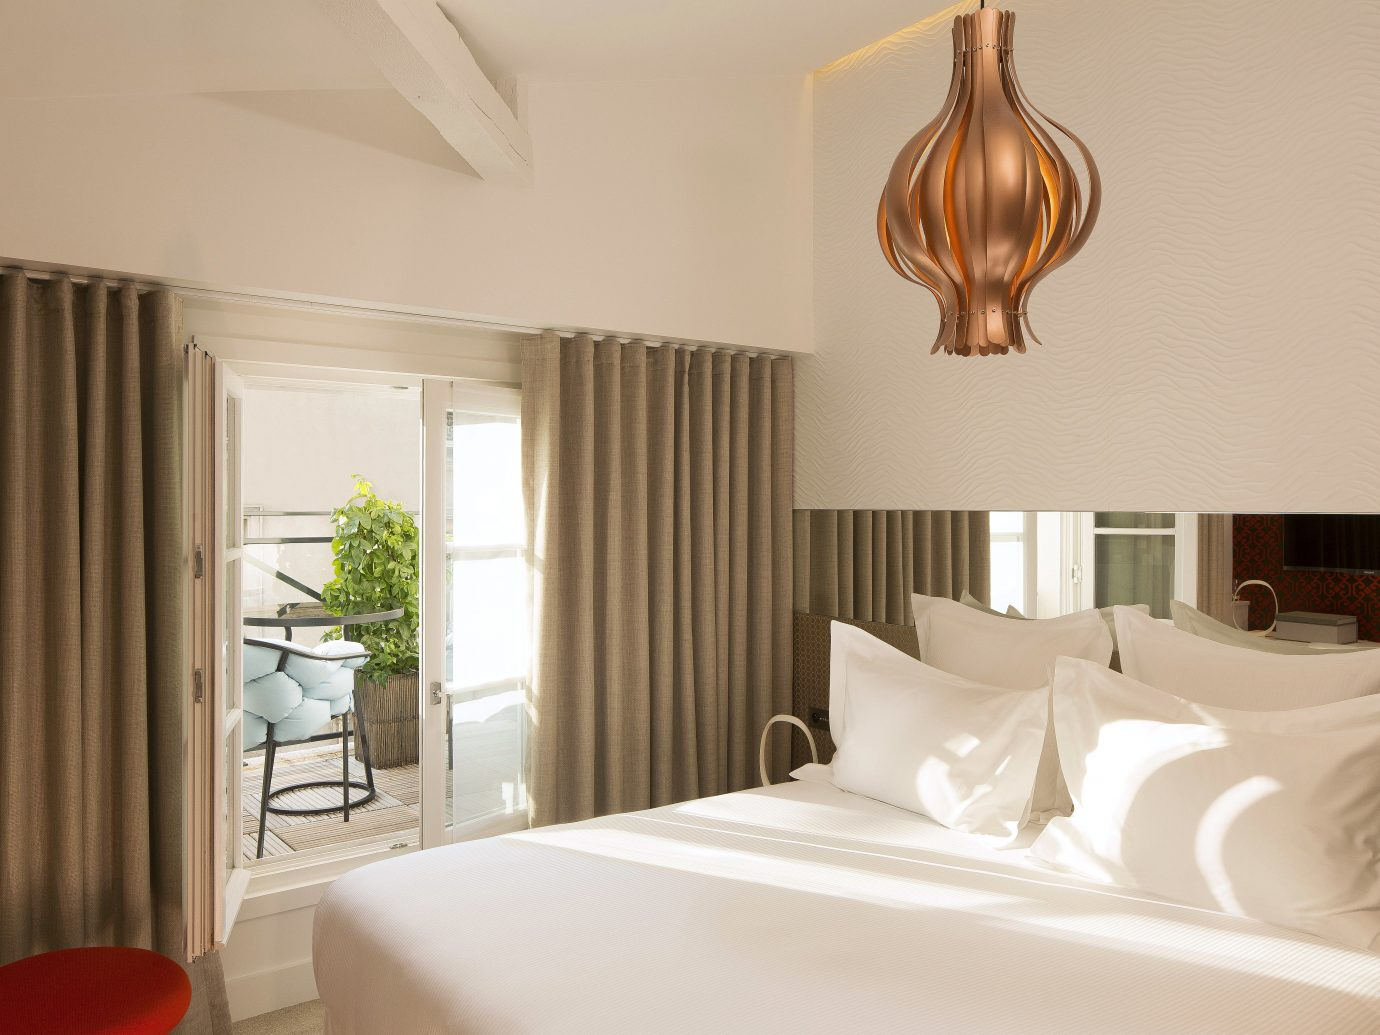 Balcony Bedroom Boutique City Design Elegant Historic Hotels Romance Trip Ideas indoor wall bed room property curtain hotel interior design Suite ceiling home floor estate real estate living room furniture decorated